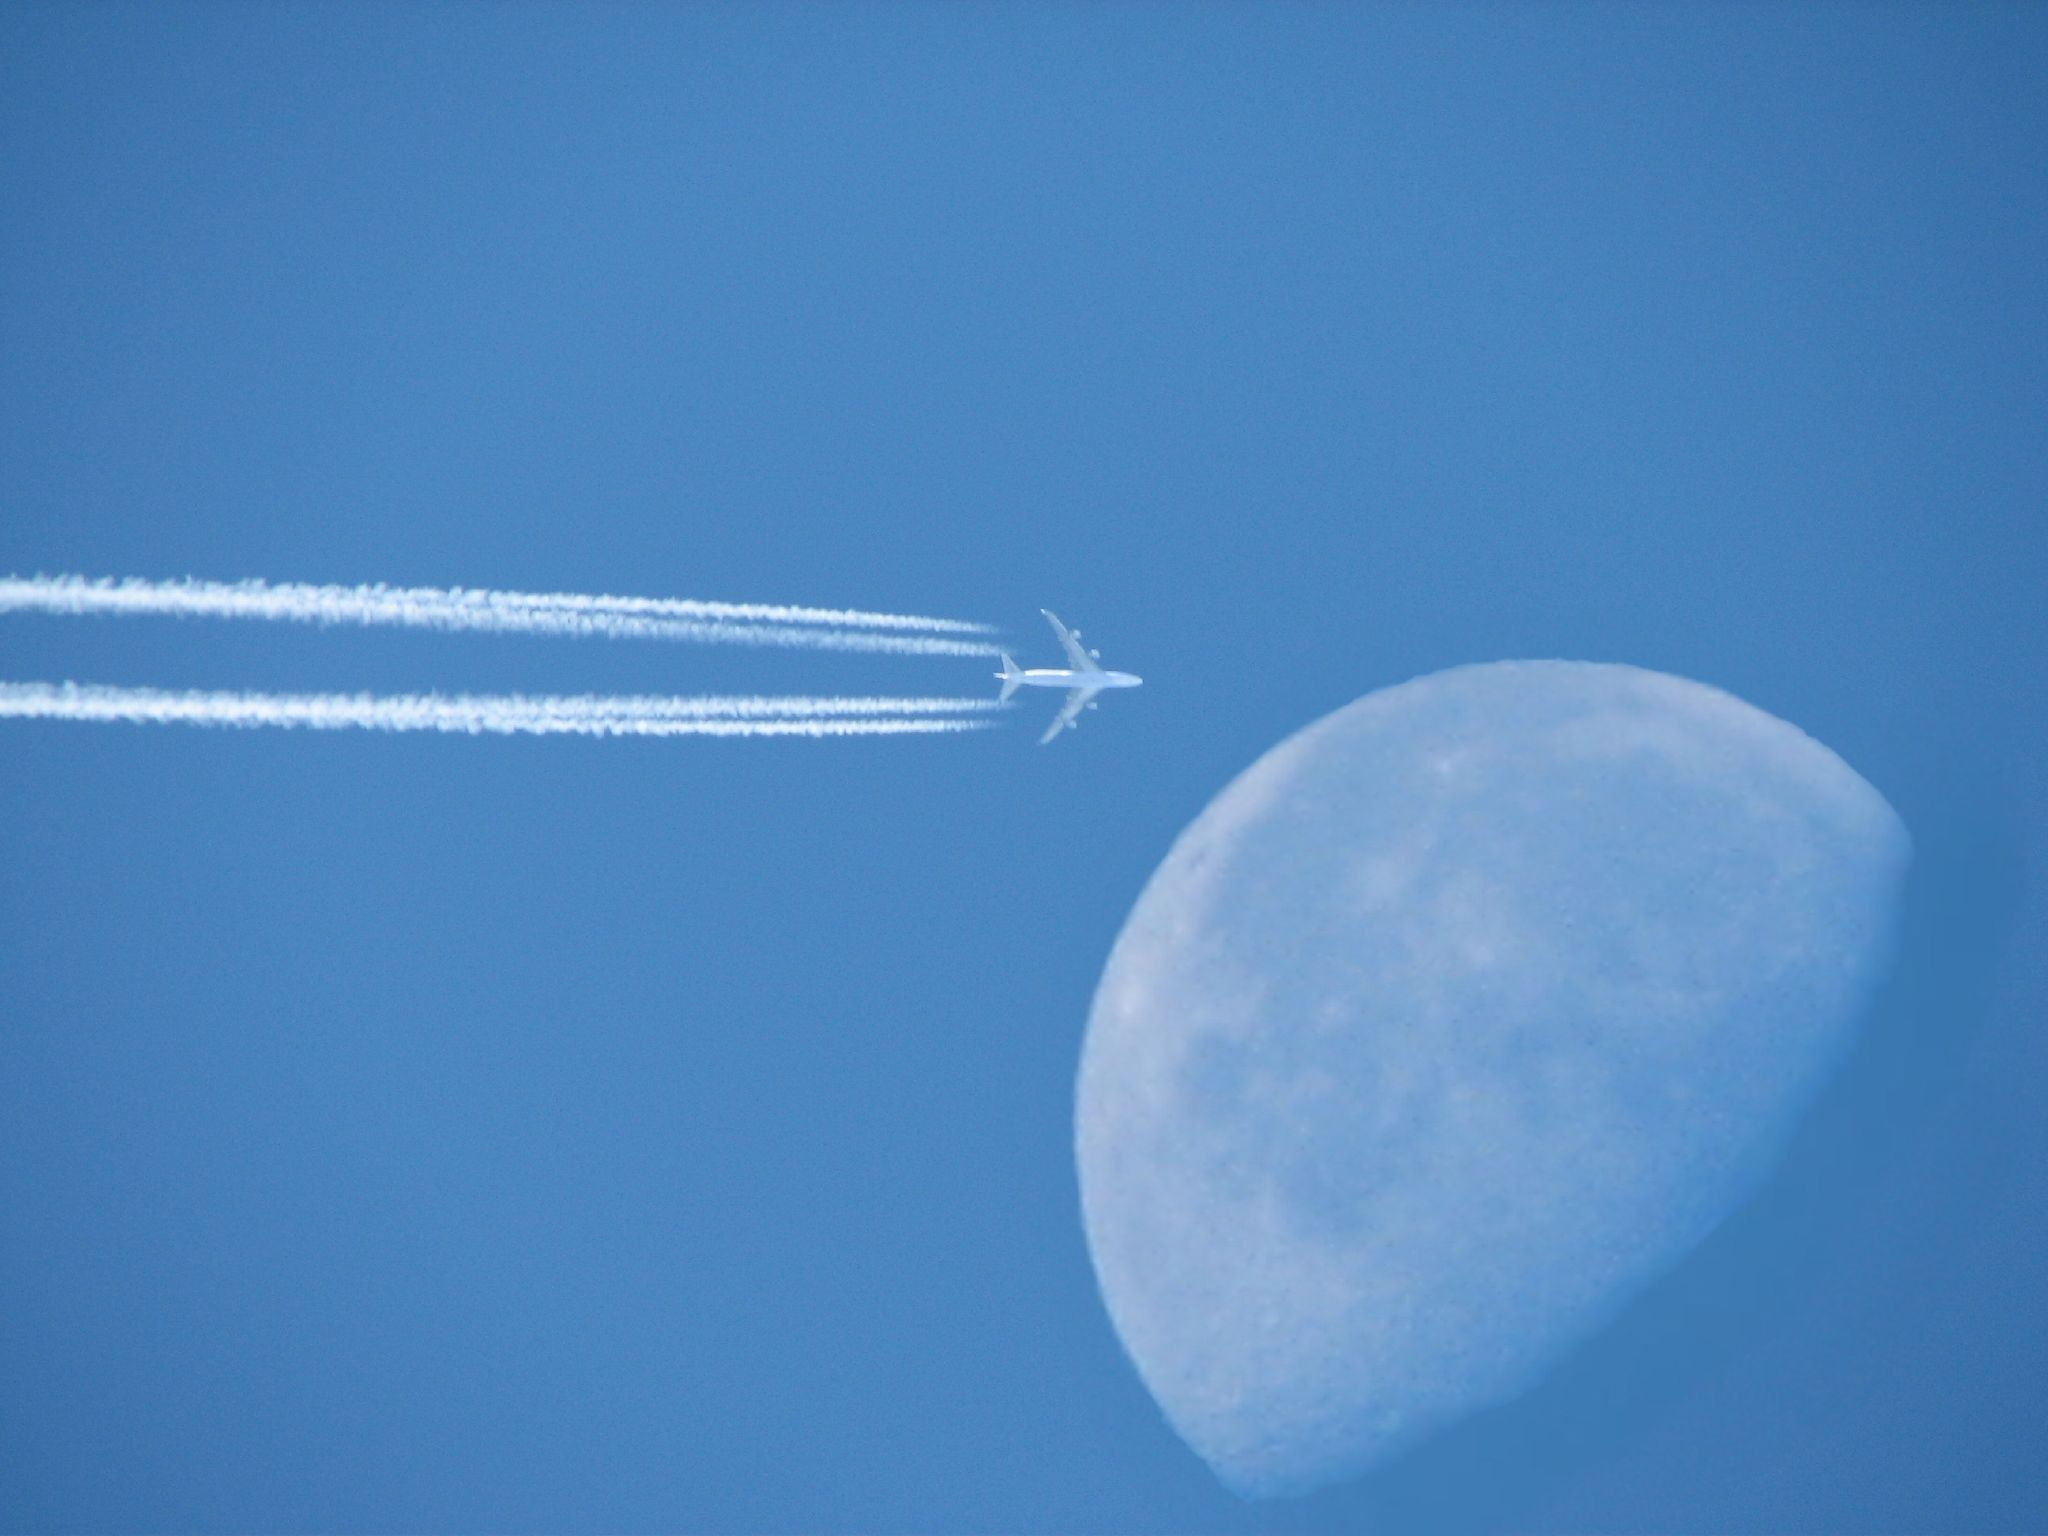 Fly Me To The Moon Chart: Fly Me To The Moon.jpg - Wikimedia Commons,Chart